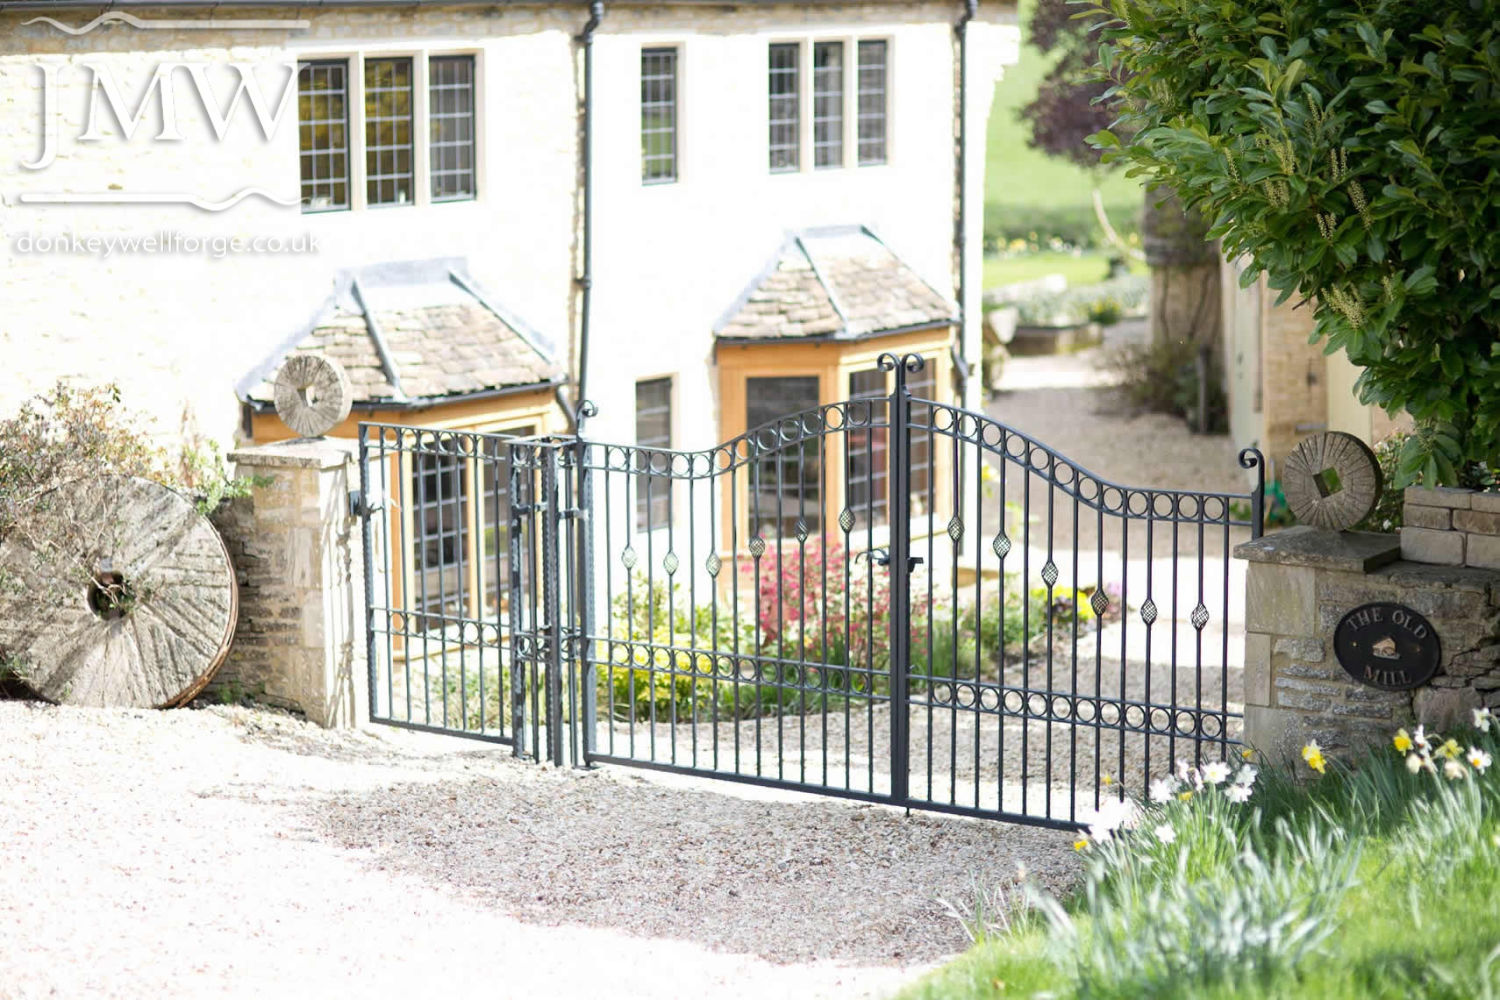 bespoke-gates-country-house-blacksmith-cotswolds-iron-work-donkeywell-forge